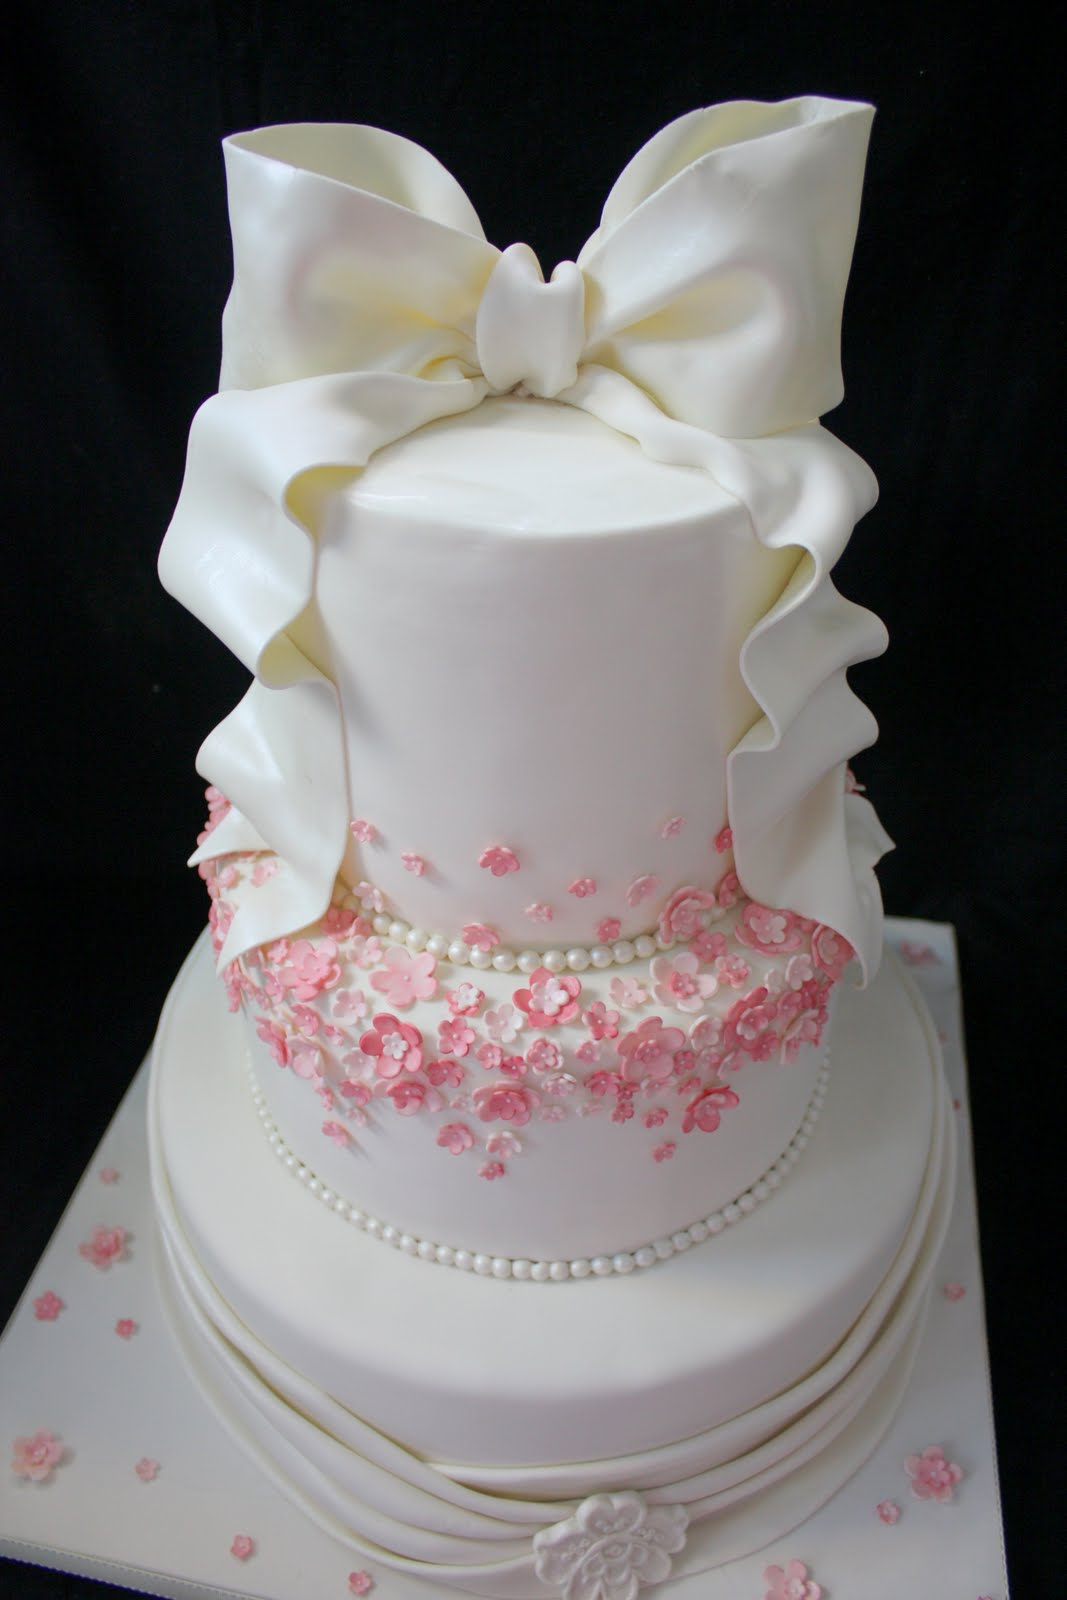 New Latest Cake Images : Complete Deelite: Our latest Wedding cakes:)